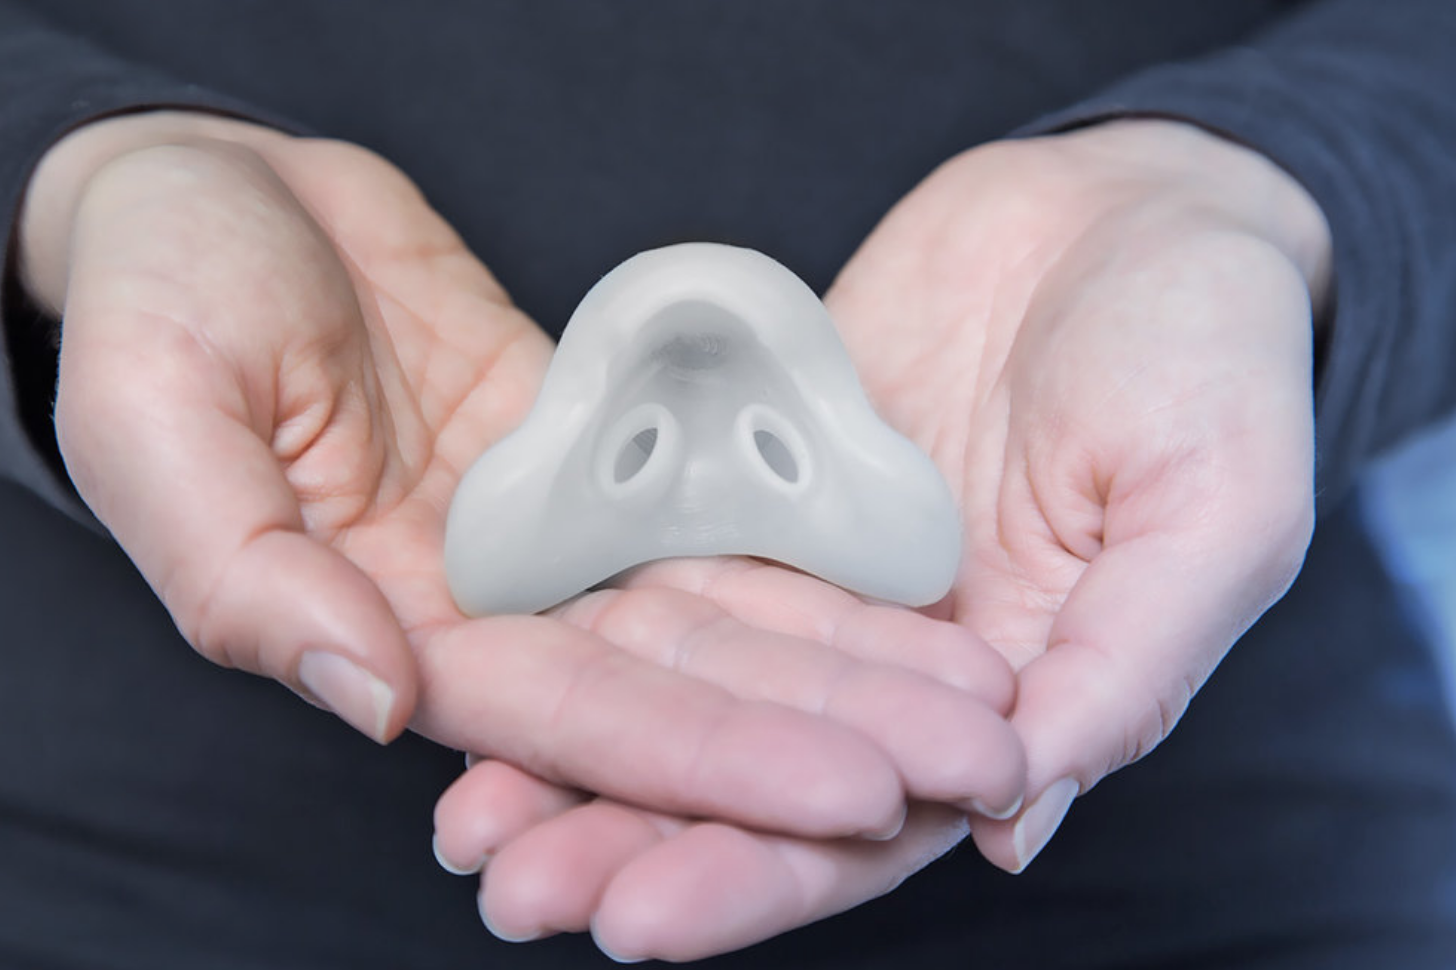 Innovative 3D Printed Face Mask Gives Sleep Apnea Sufferers Breathing Relief | All3DP